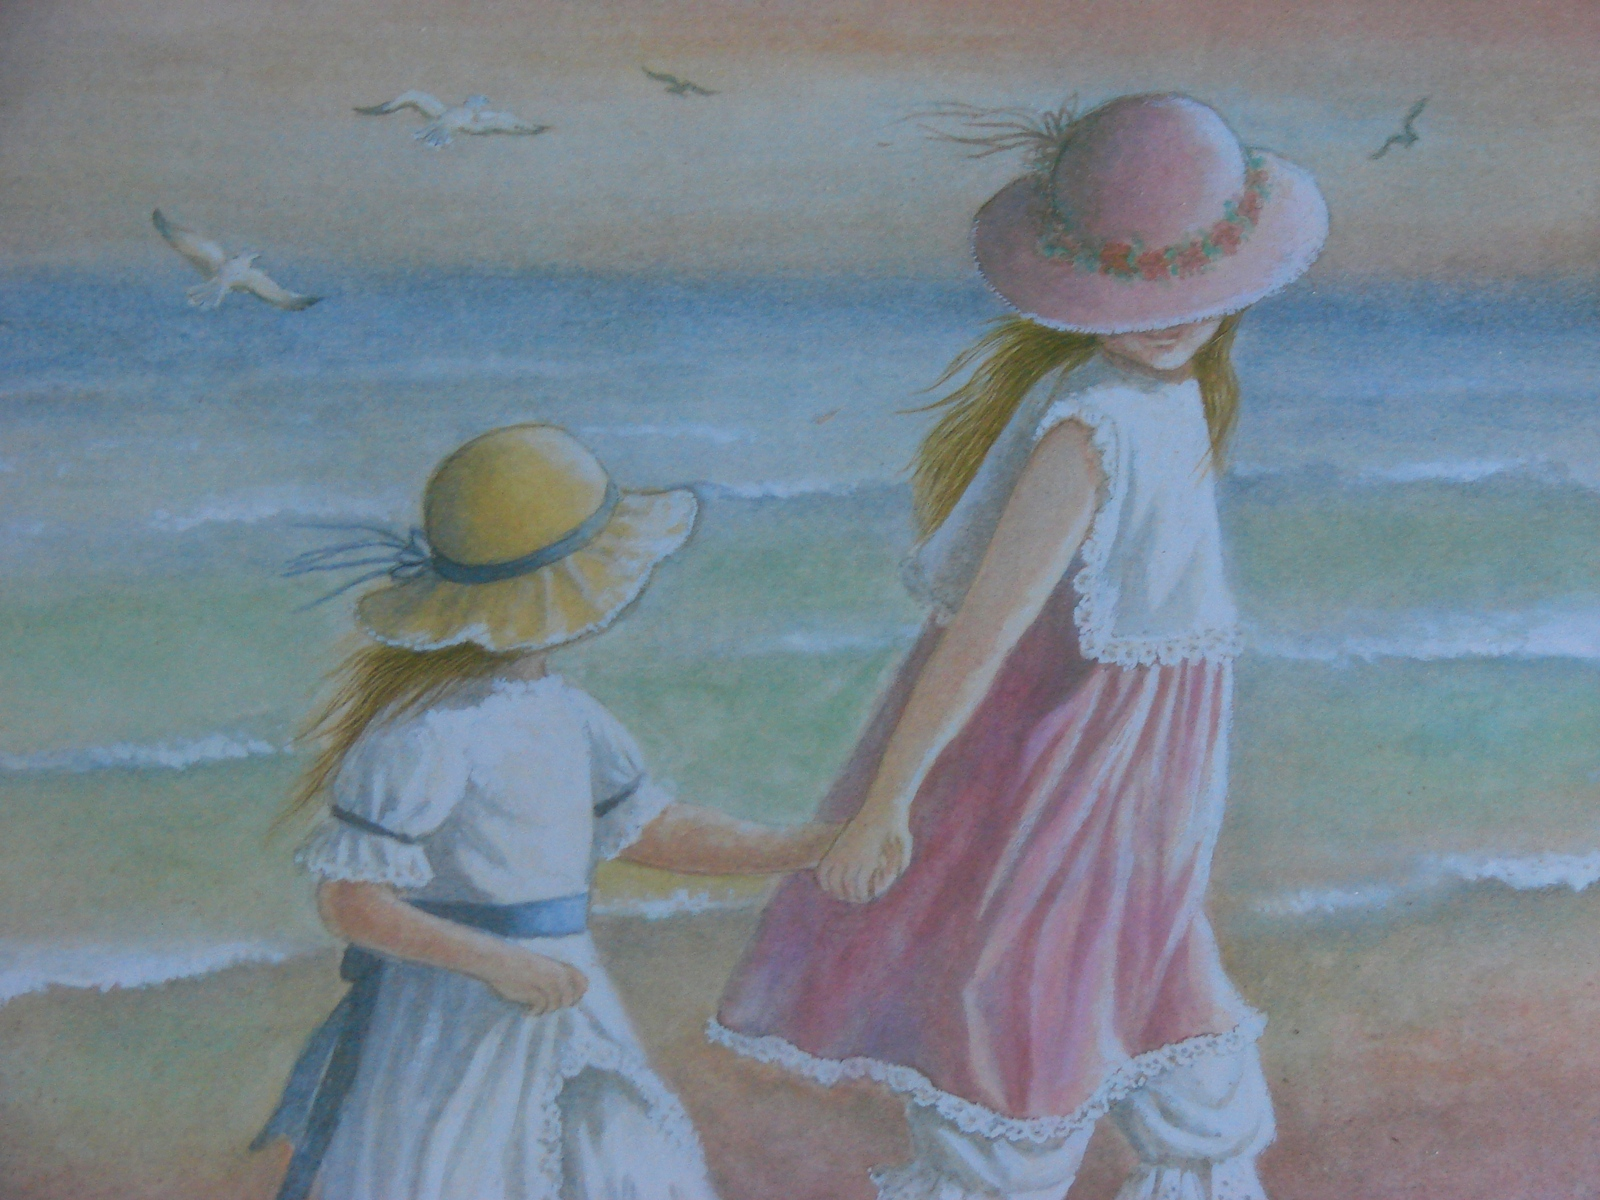 Friends Forever -Young Girls Holding Hands on Beach by Miran Lee Print